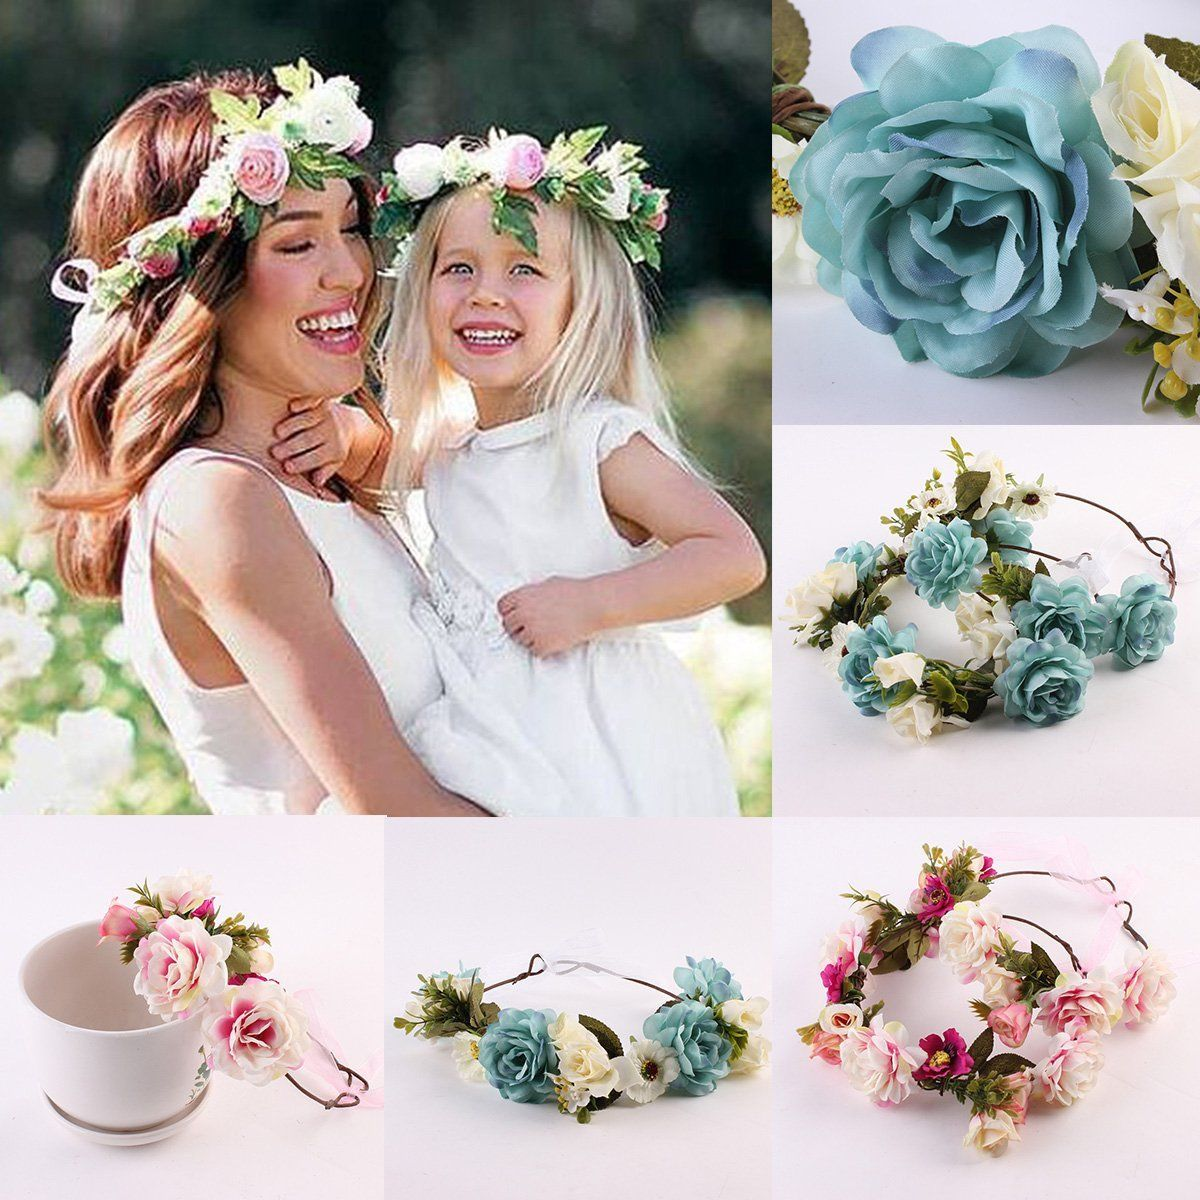 Aliexpress Buy 2 Pieces Parenting Cute Bohemian Flower Crown